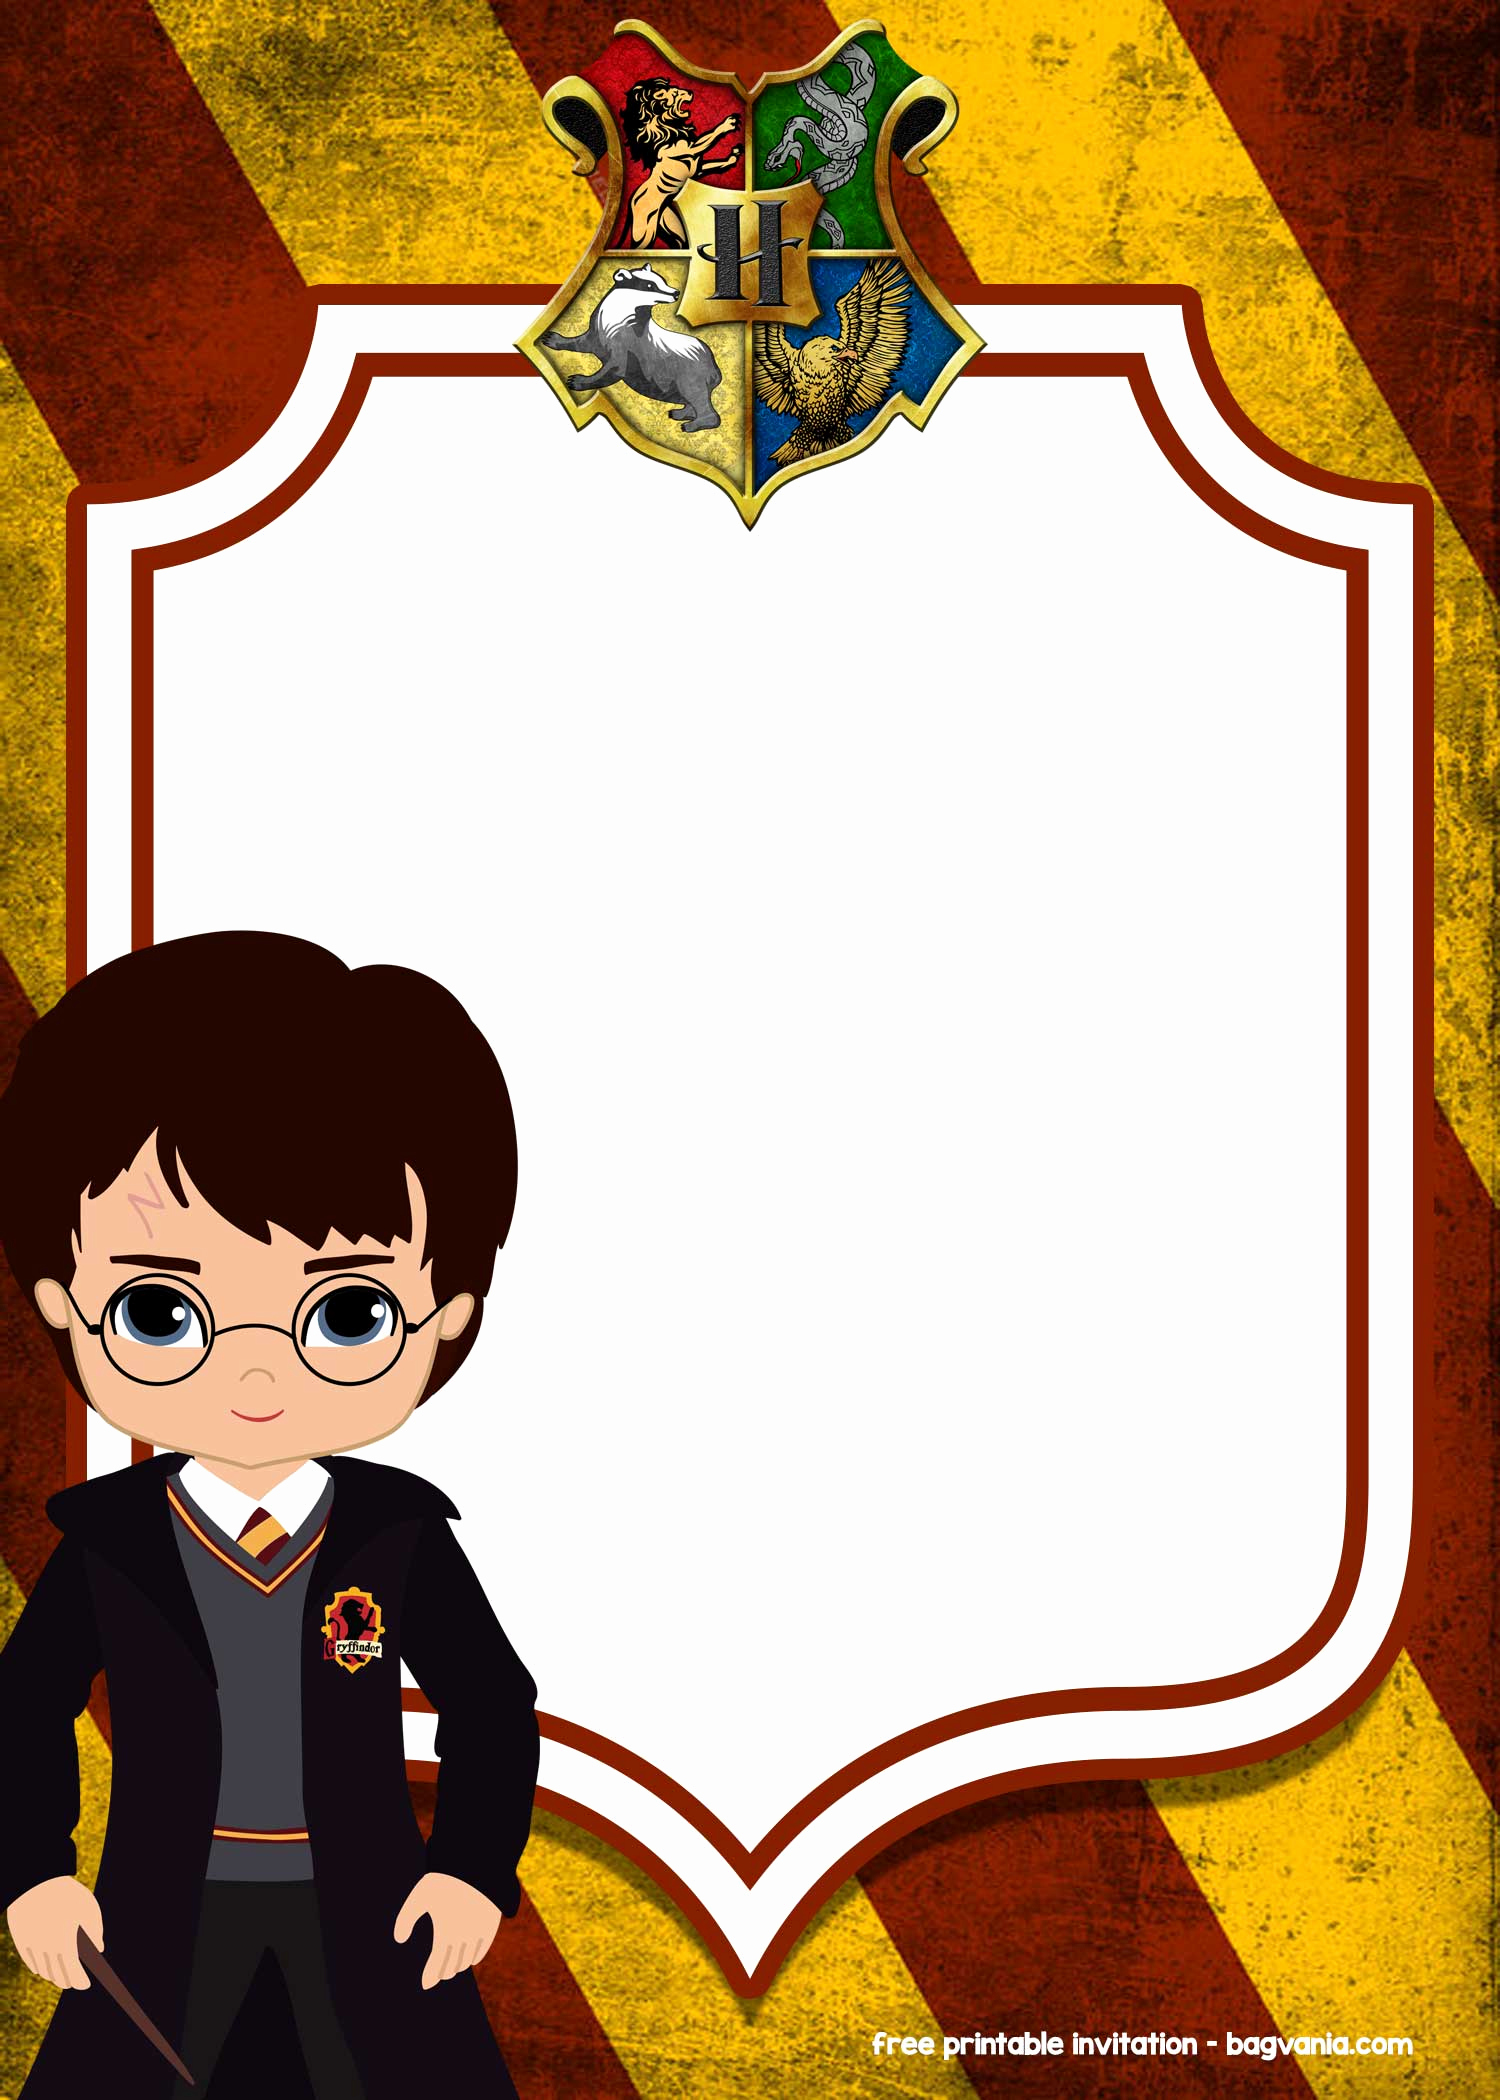 Harry Potter Invitation Template Free Best Of Free Printable Harry Potter Invitation Templates – Free